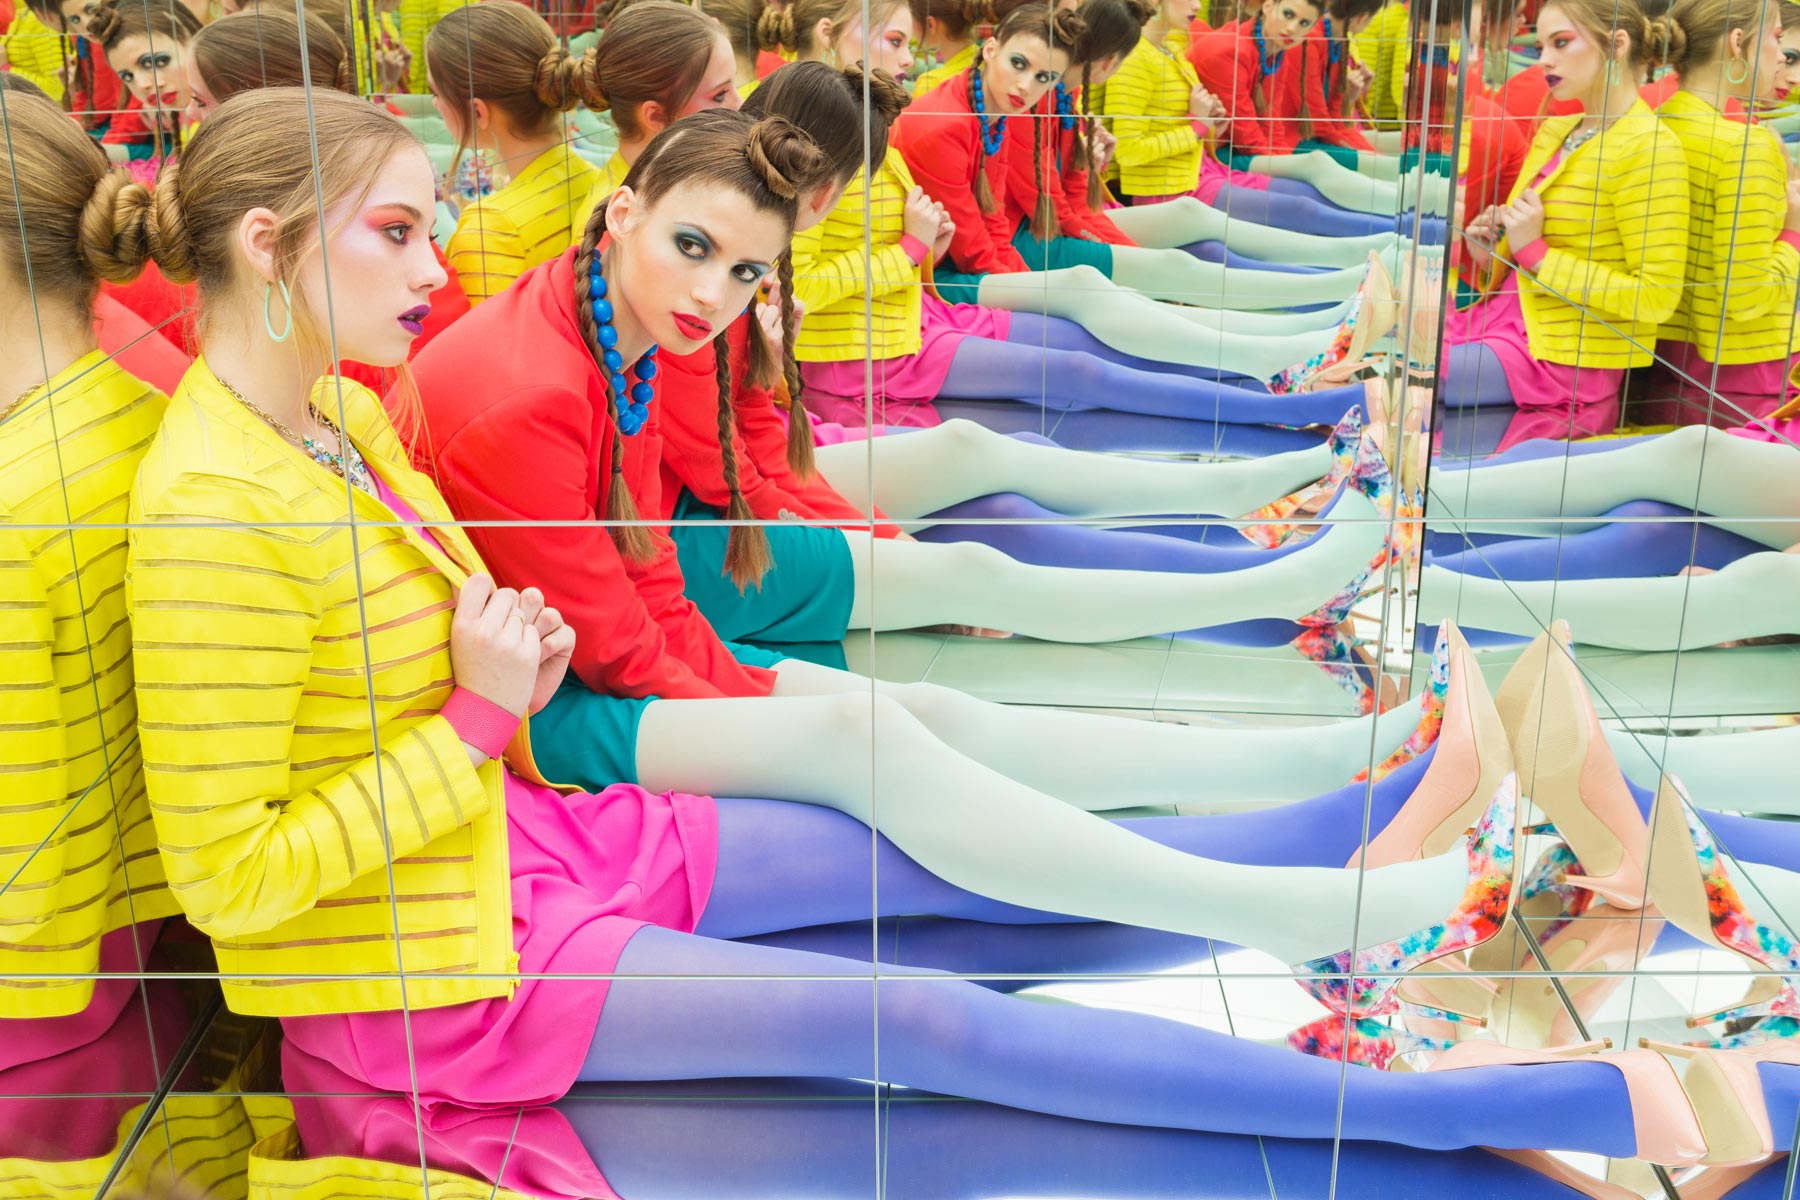 Conceptual fashion image of two woman with bright clothes in a mirror box by Michael Schmitt